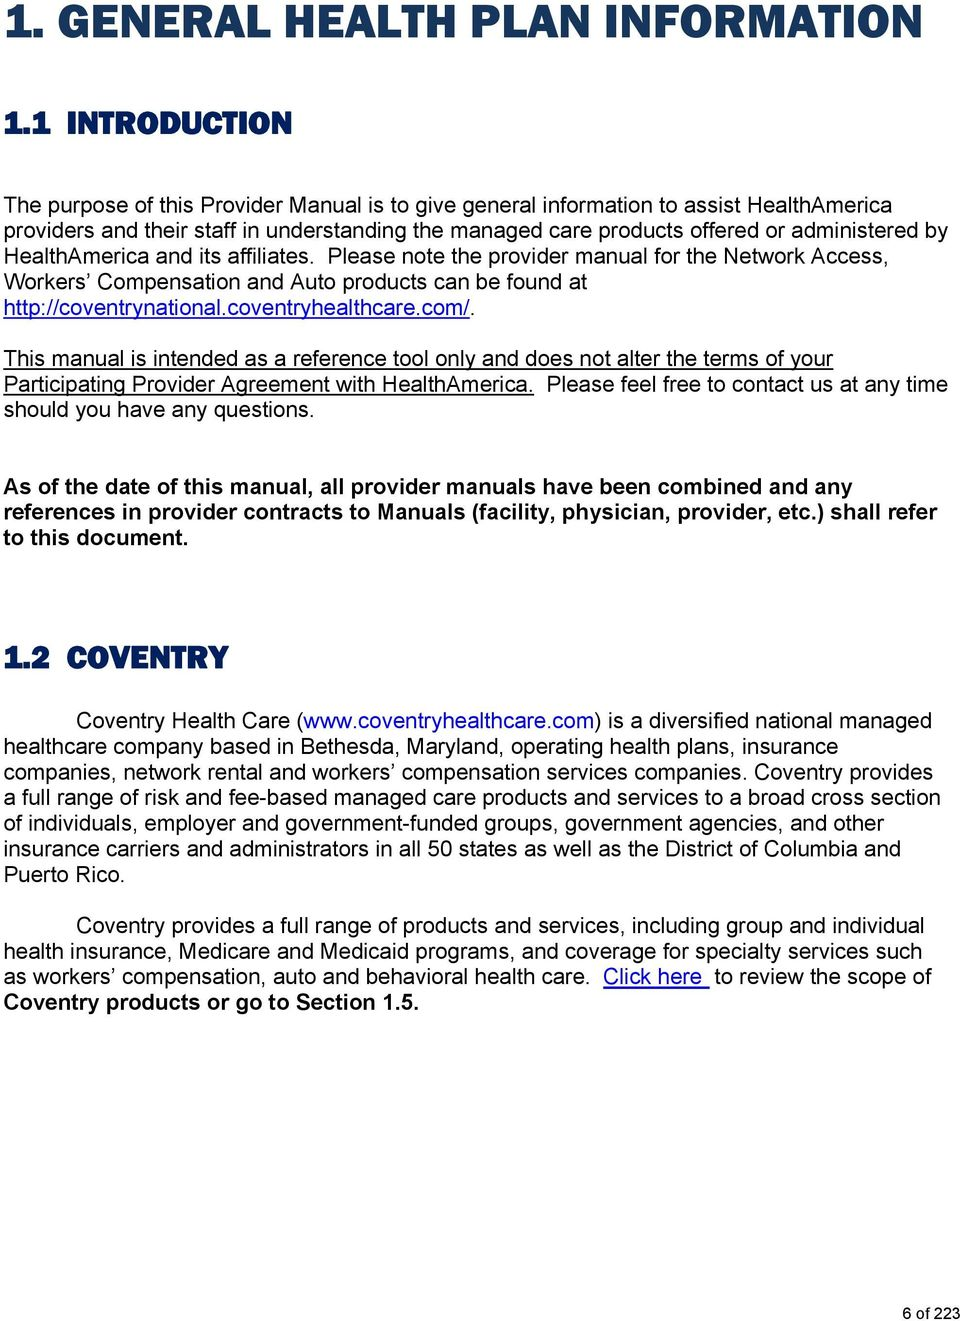 by HealthAmerica and its affiliates. Please note the provider manual for the Network Access, Workers Compensation and Auto products can be found at http://coventrynational.coventryhealthcare.com/.